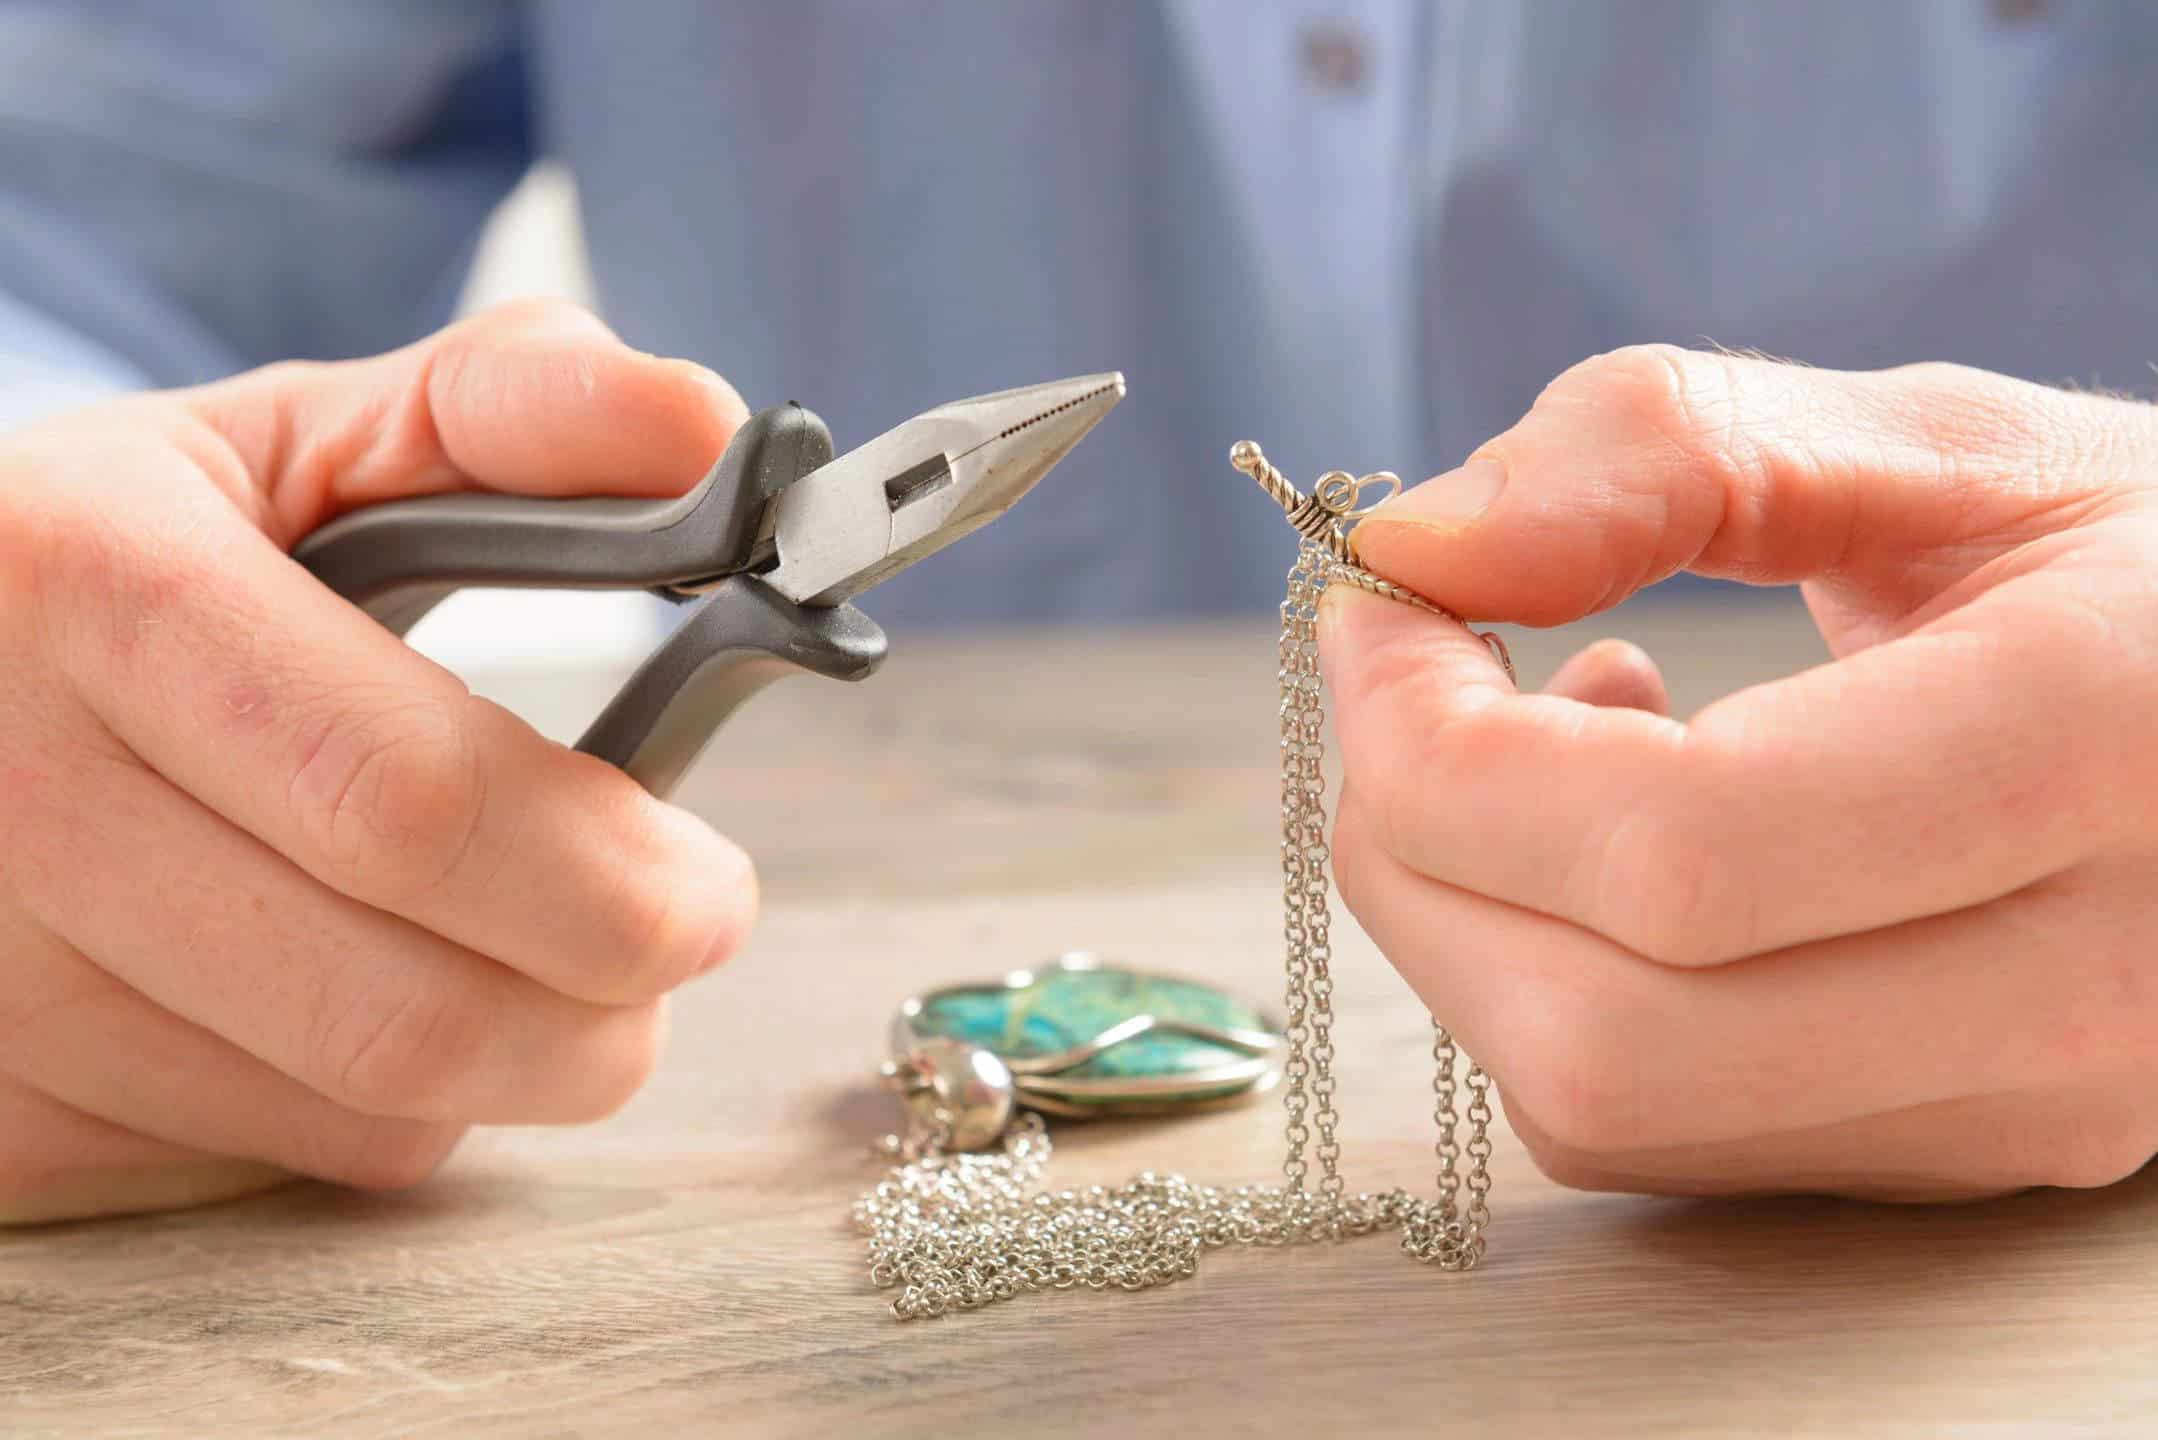 Learn How to Make Jewelry at Home: For Beginners